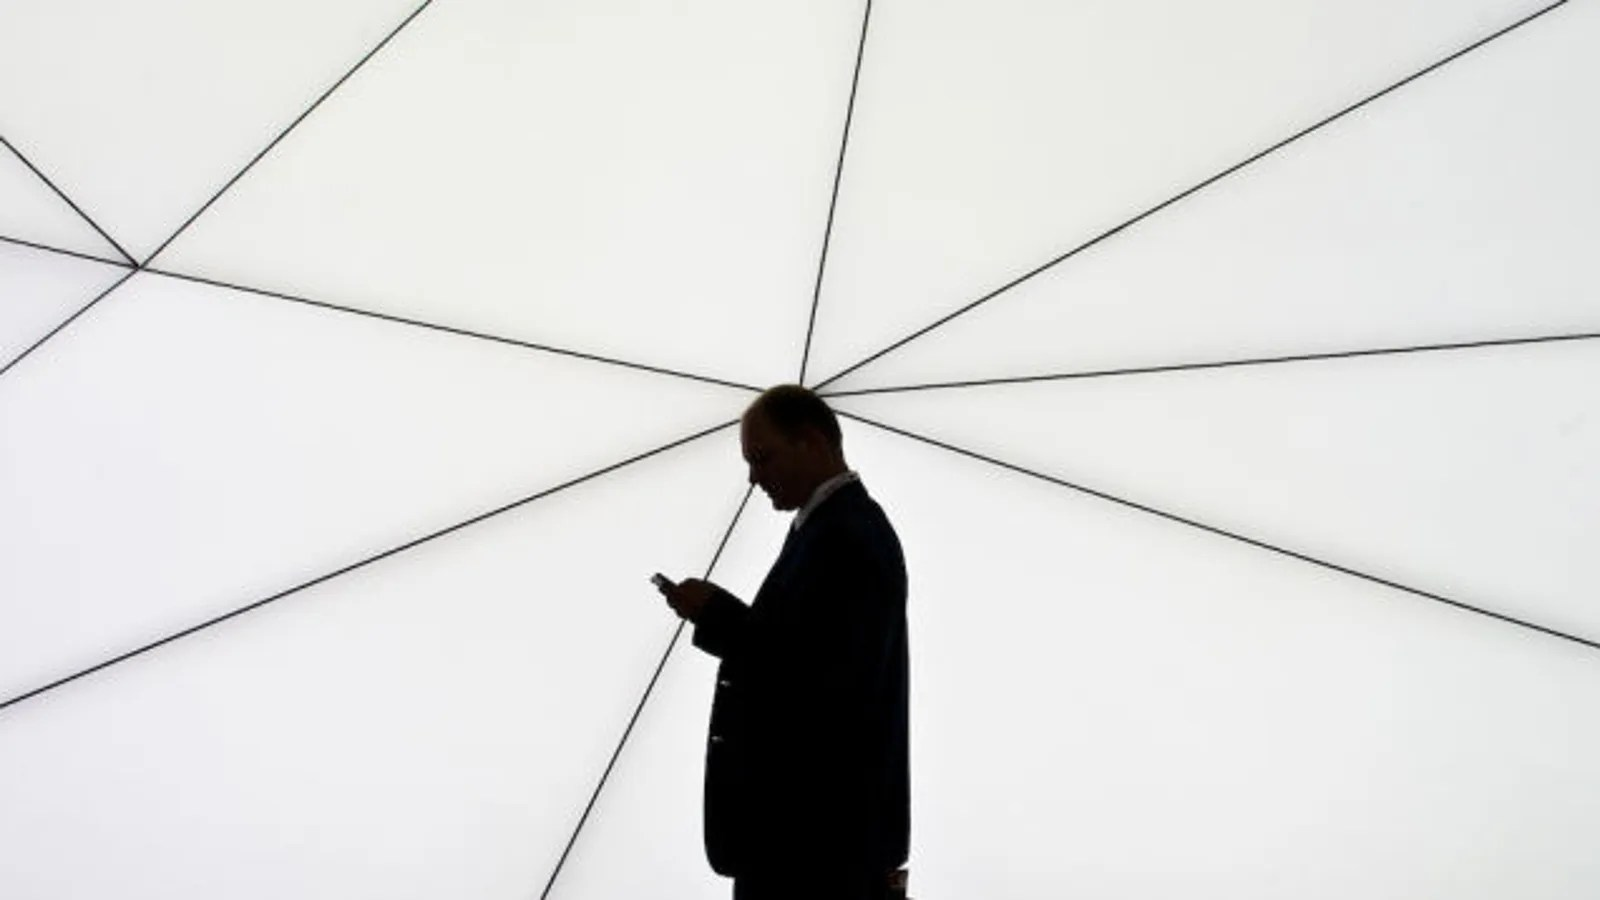 NSA Planned to Sneak-Attack App Stores to Put Spyware on